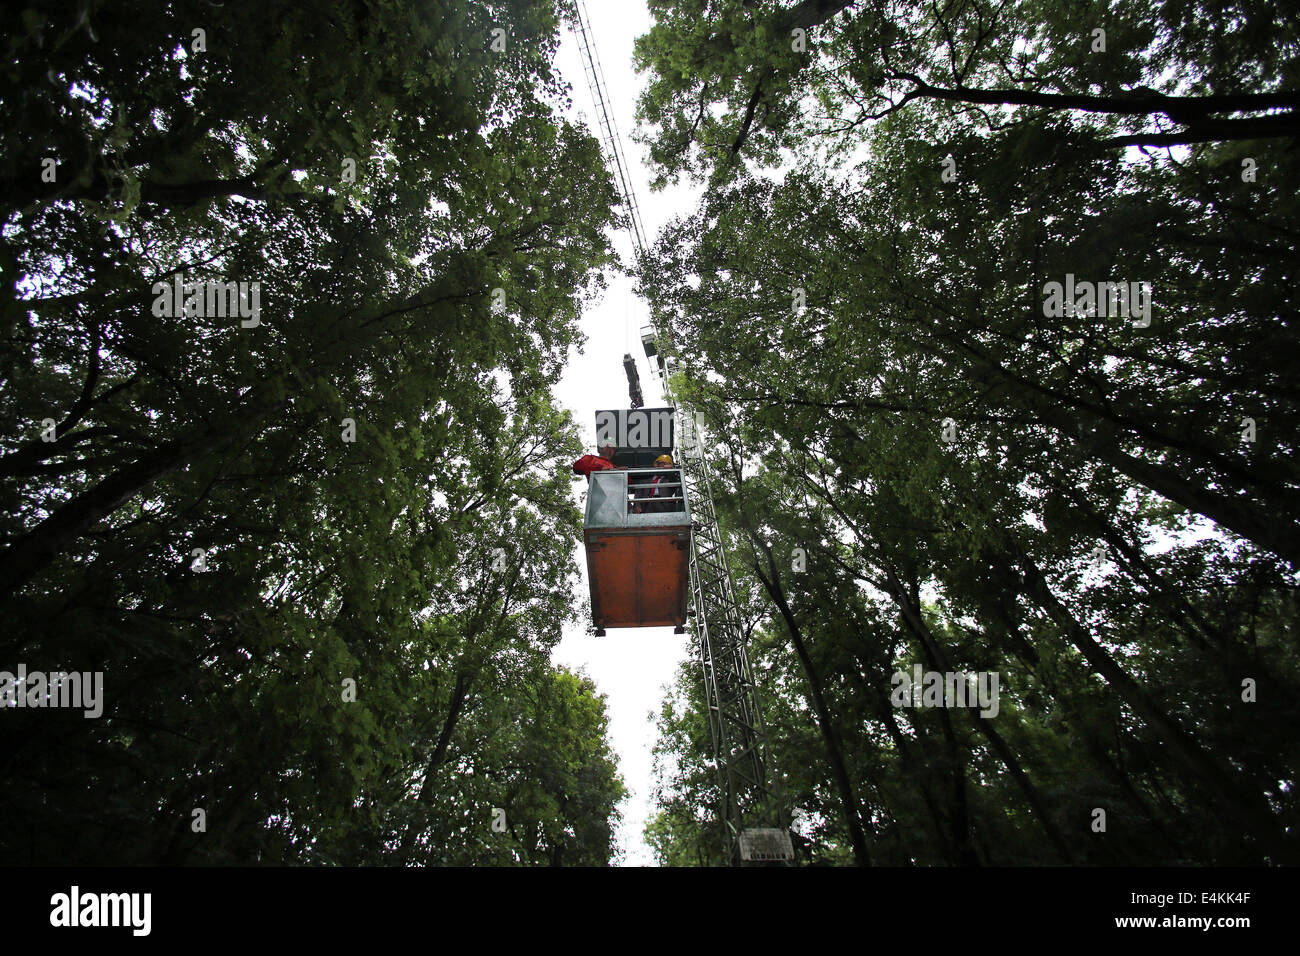 Scientists of Leipzig University travel in a small canopy crane across the Auwald near Leipzig Germany 9 July 2014. A year after the canopy crane was ... & Scientists of Leipzig University travel in a small canopy crane ...